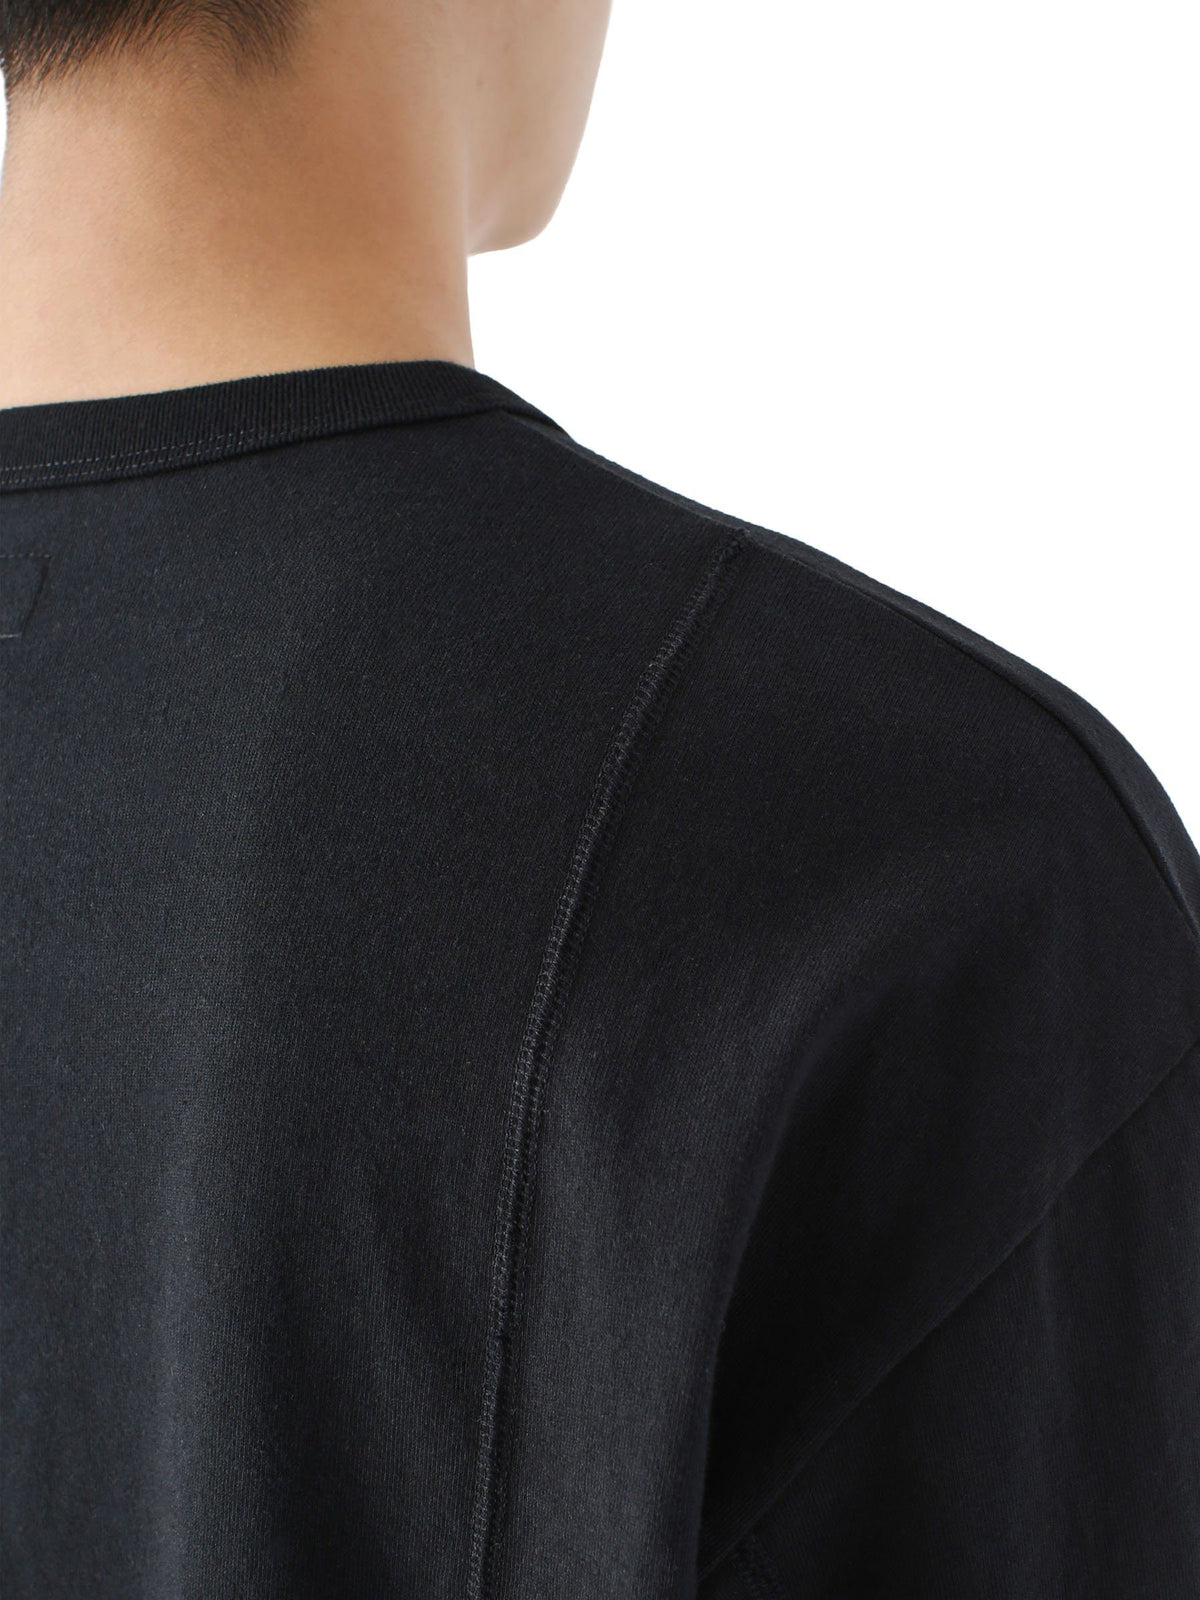 Paneled Pocket L/SL Top L/SL T-Shirt